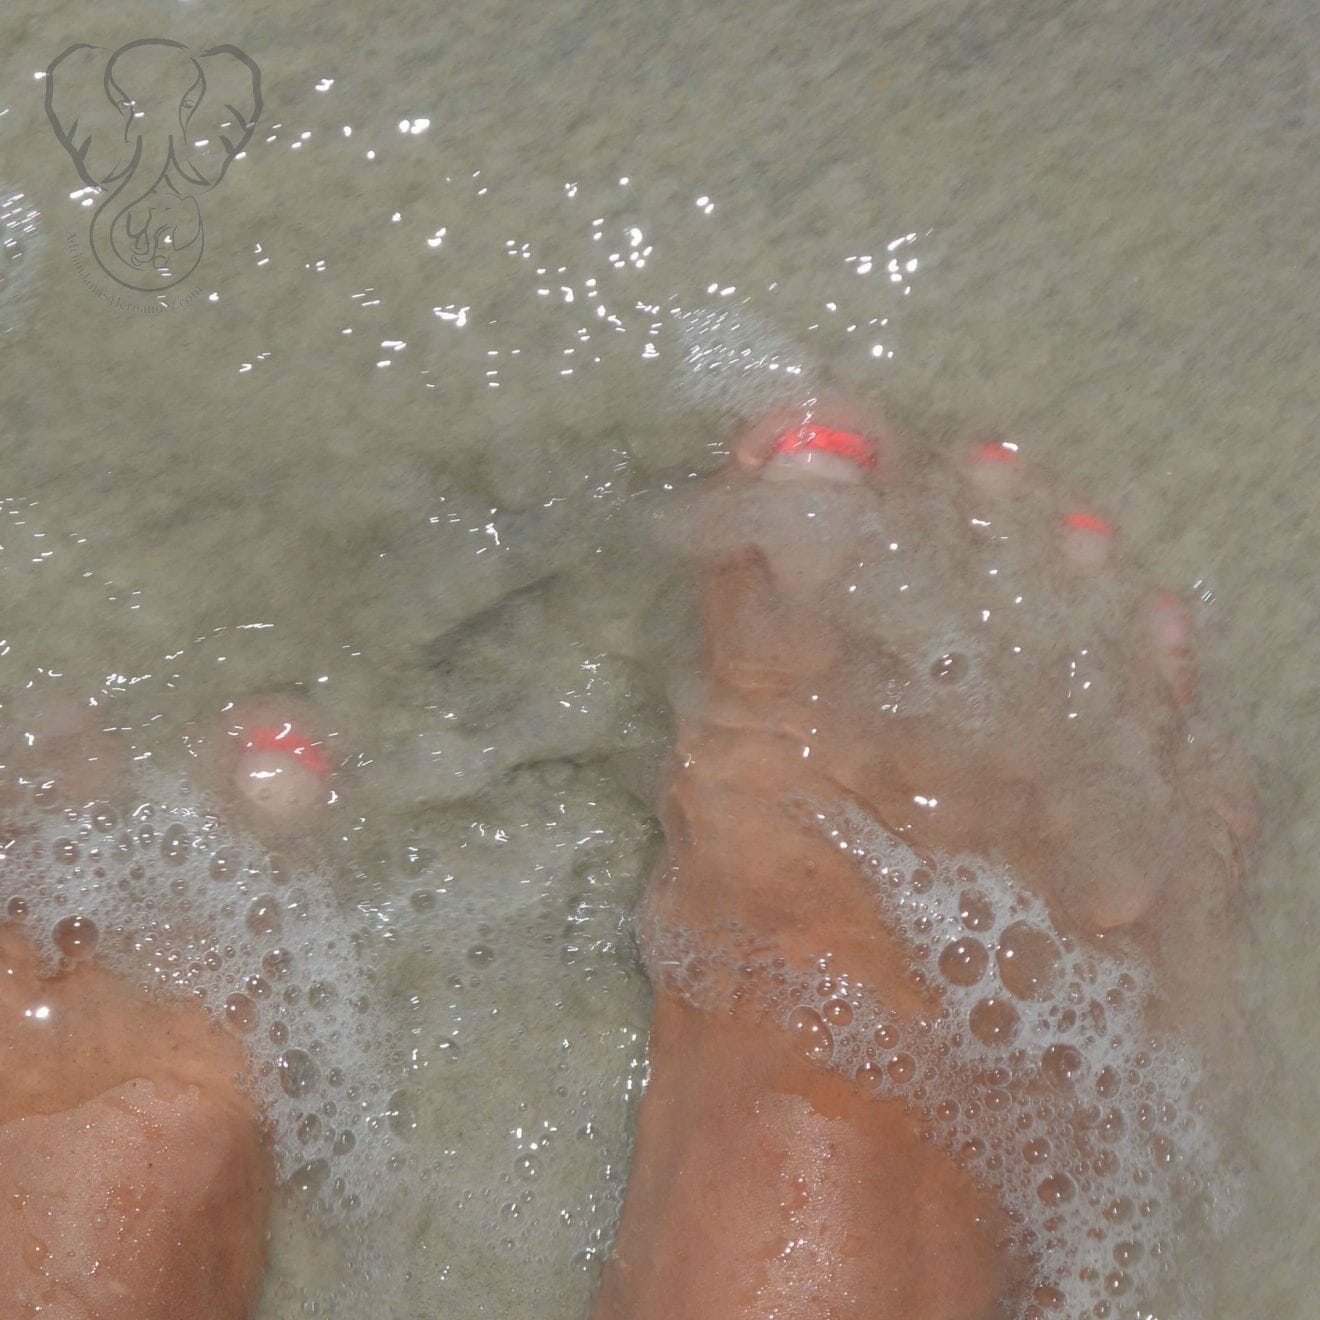 Miranda's feet in the sand, New Smyrna Beach, Florida (Miranda Hernandez)